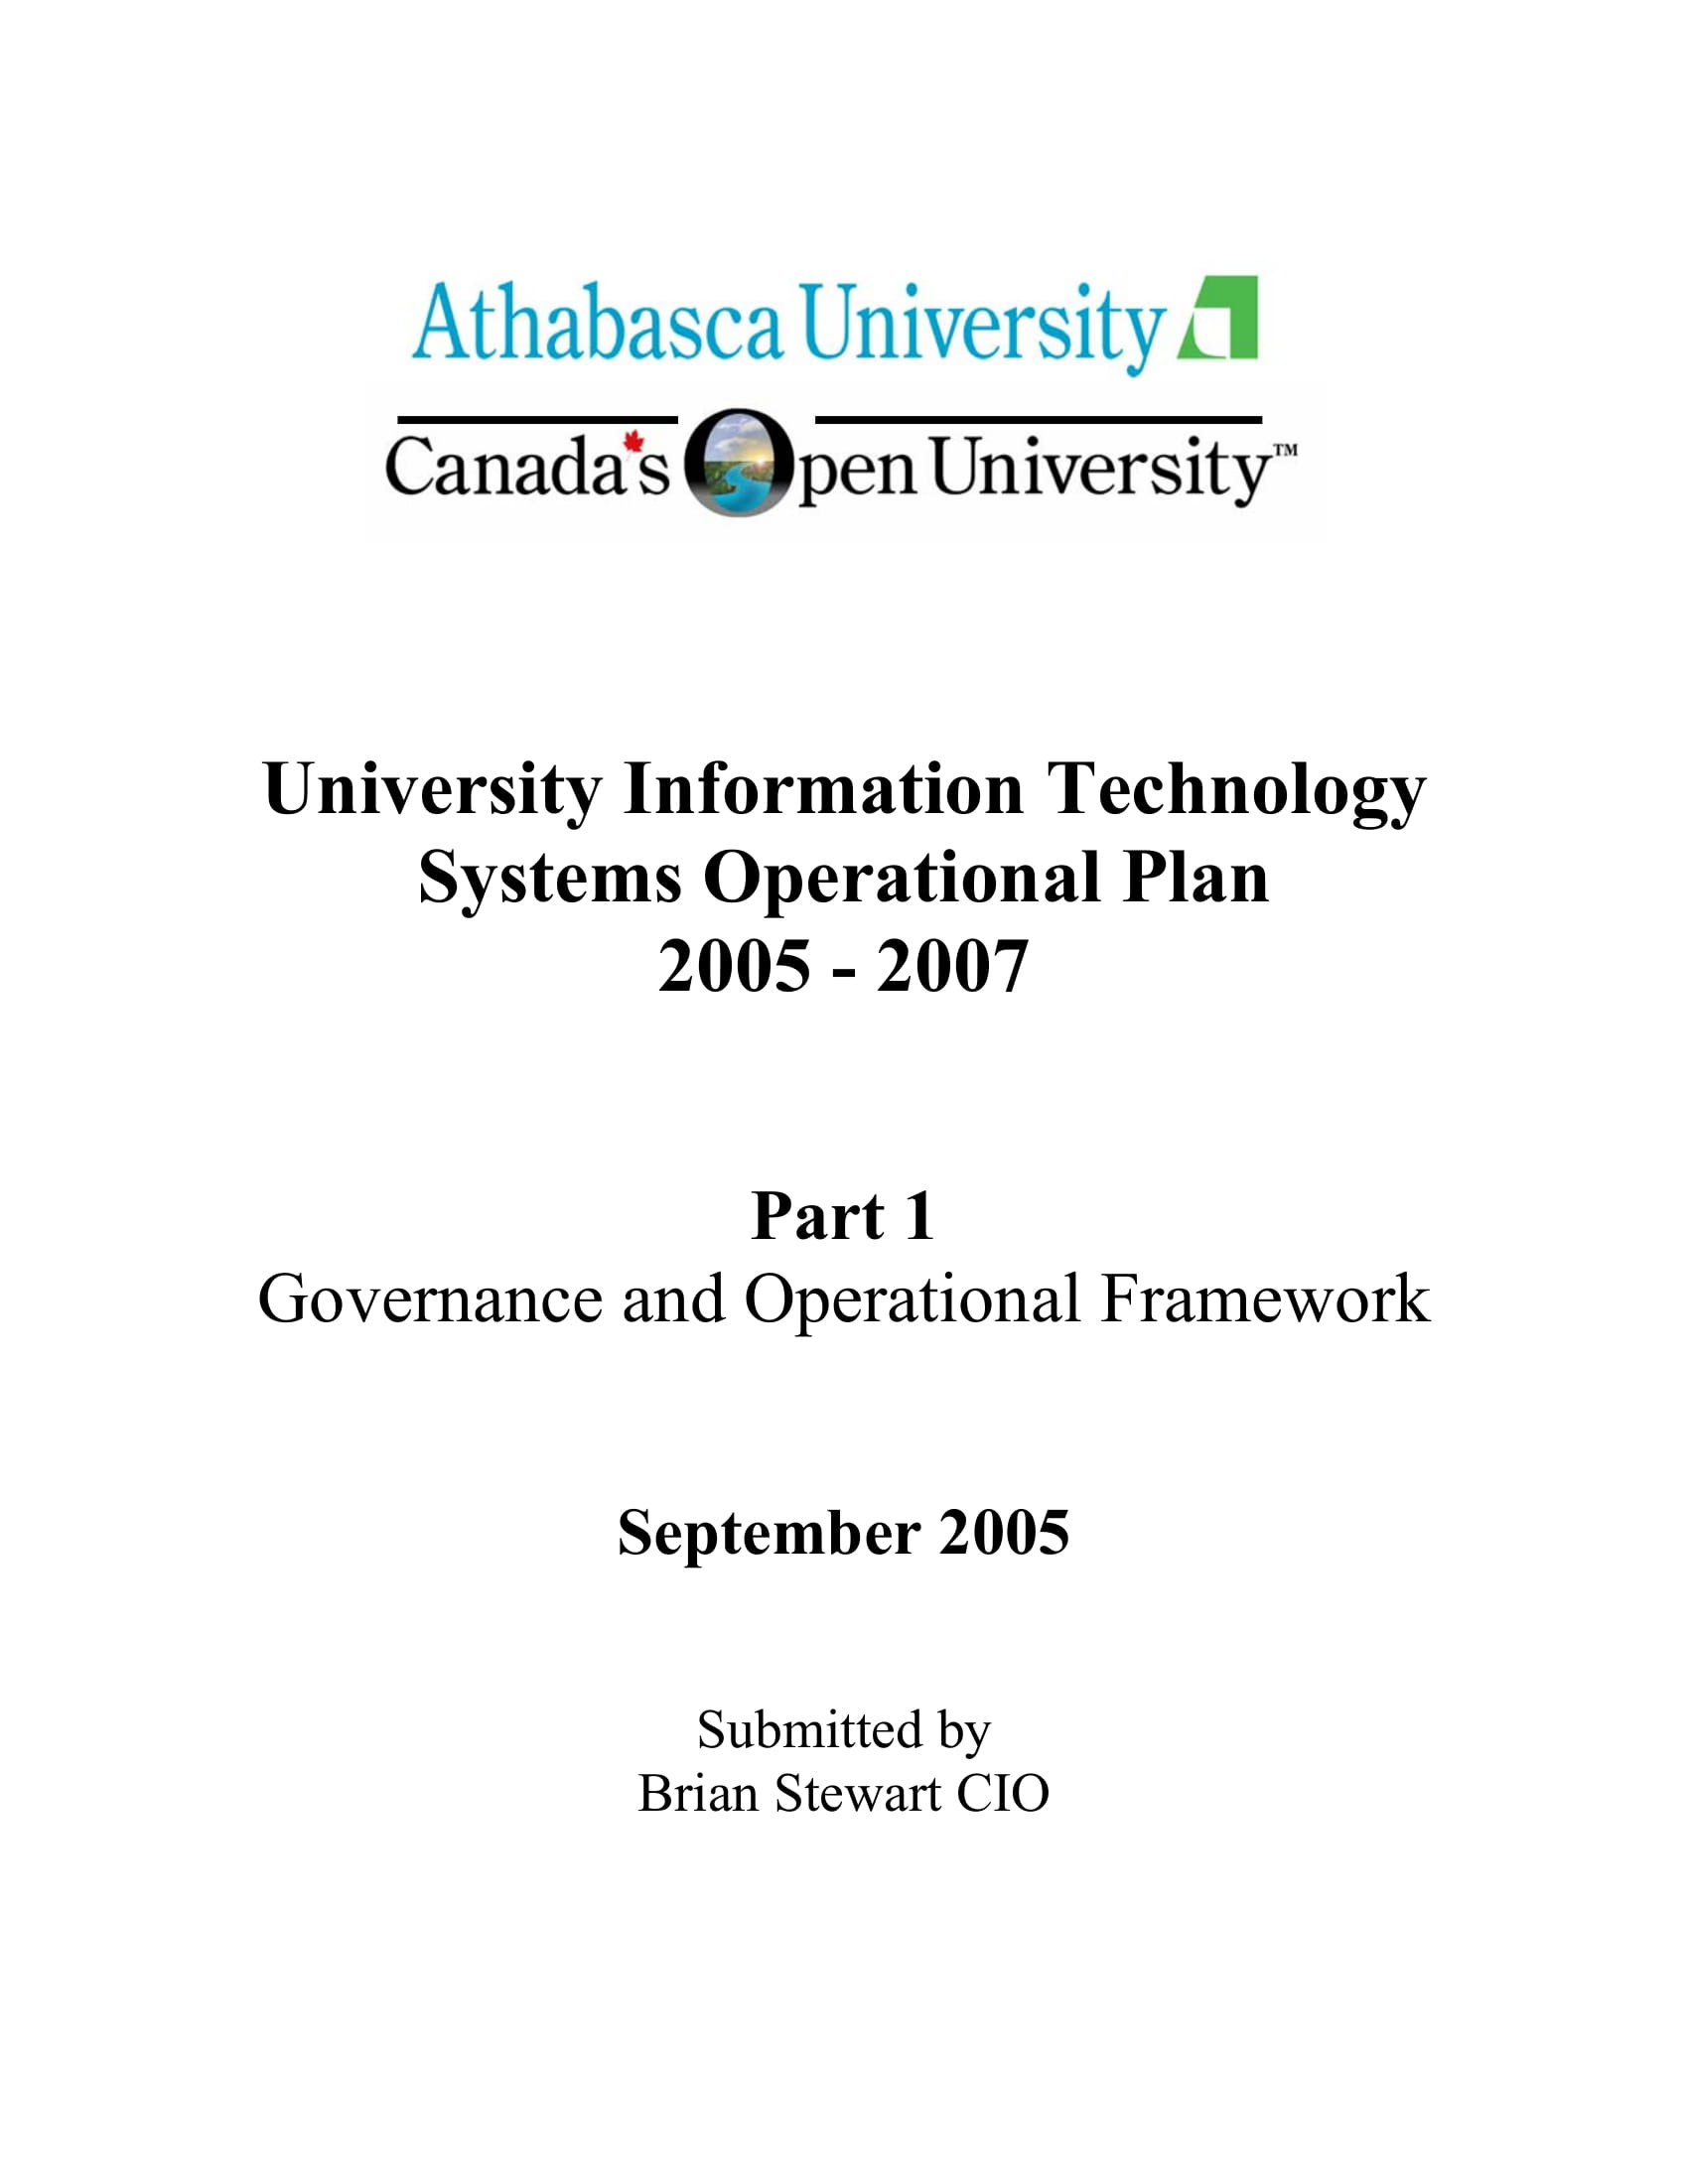 university information technology systems operational plan example 01